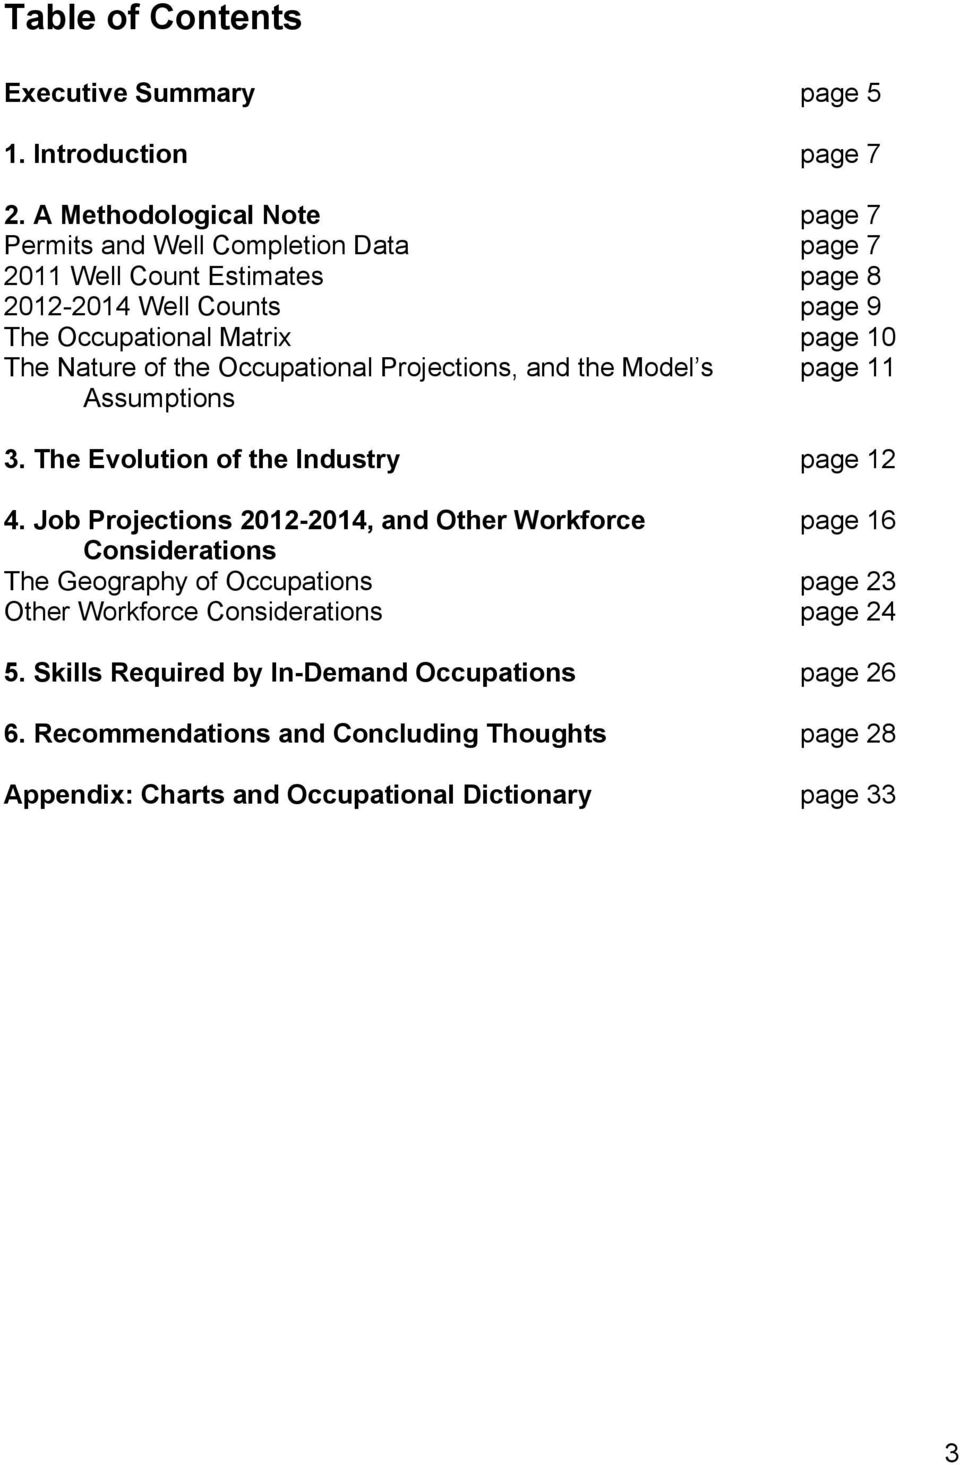 The Nature of the Occupational Projections, and the Model s page 11 Assumptions 3. The Evolution of the Industry page 12 4.